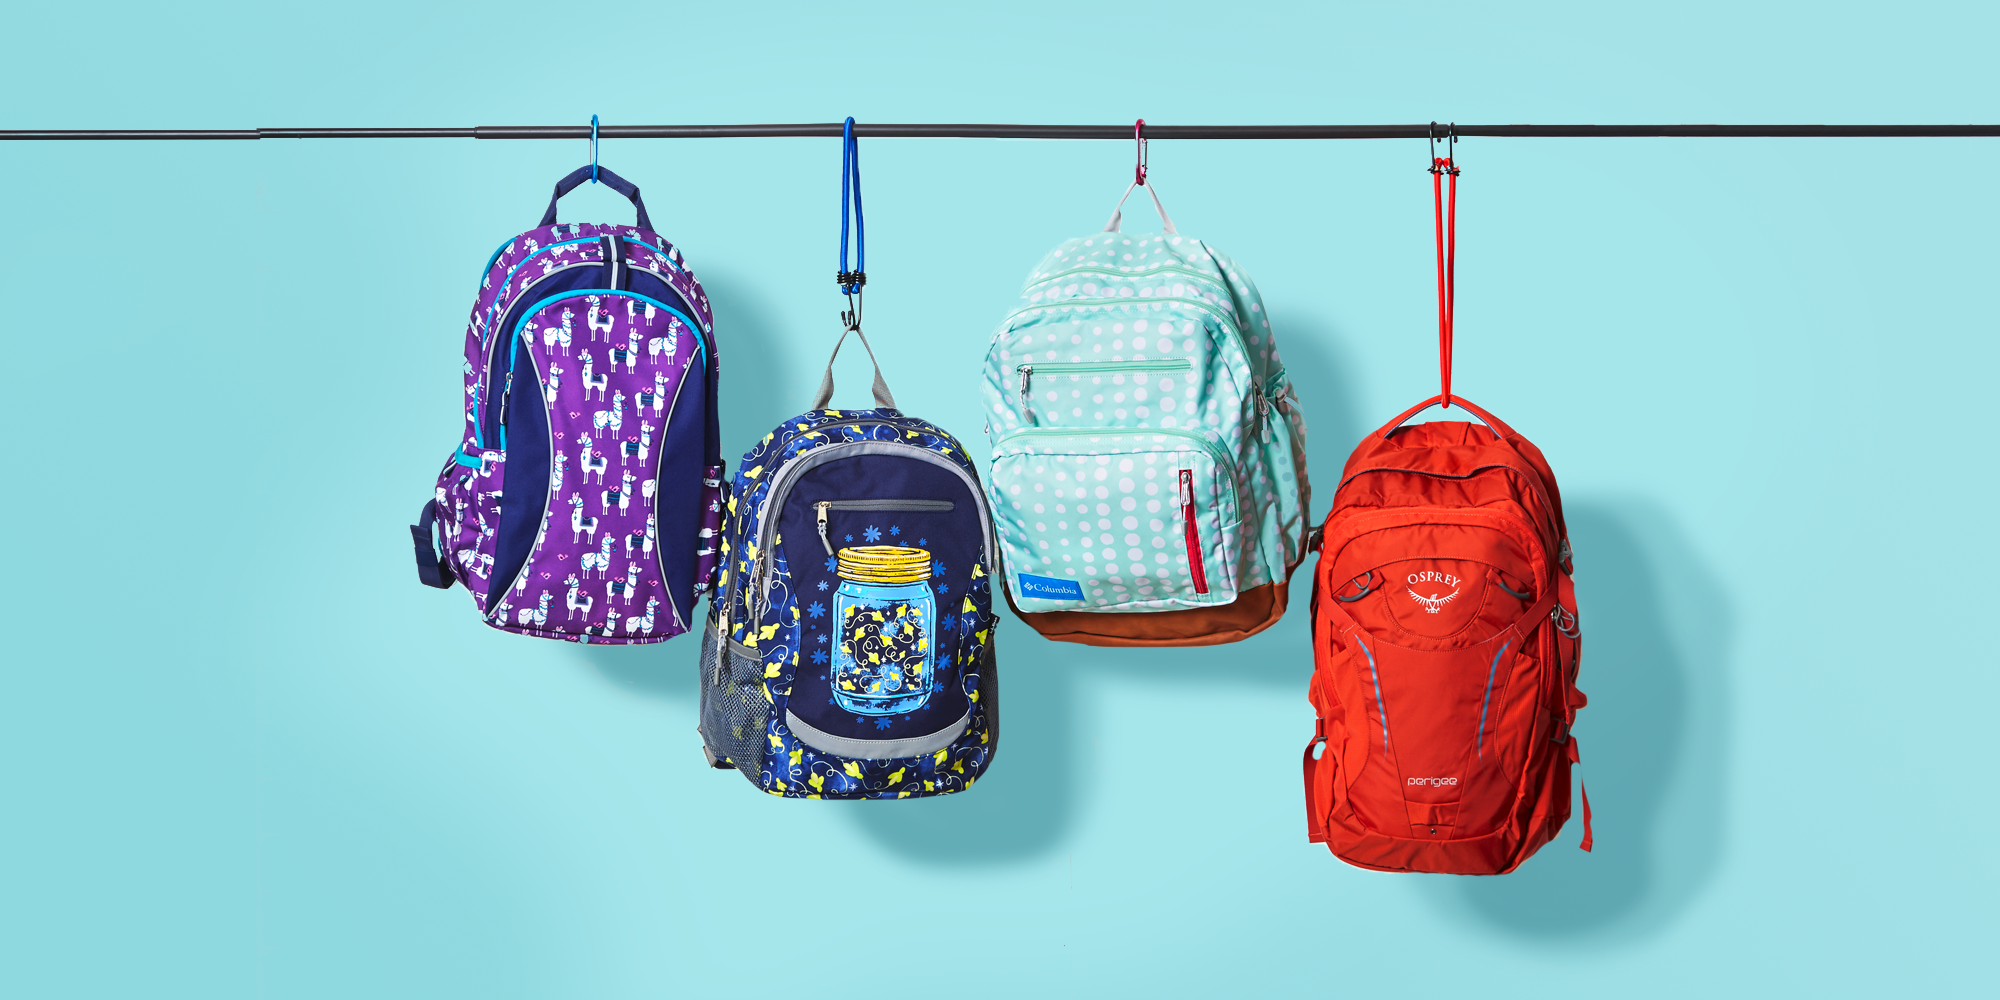 9 Best Kids Backpacks - Top-Rated School